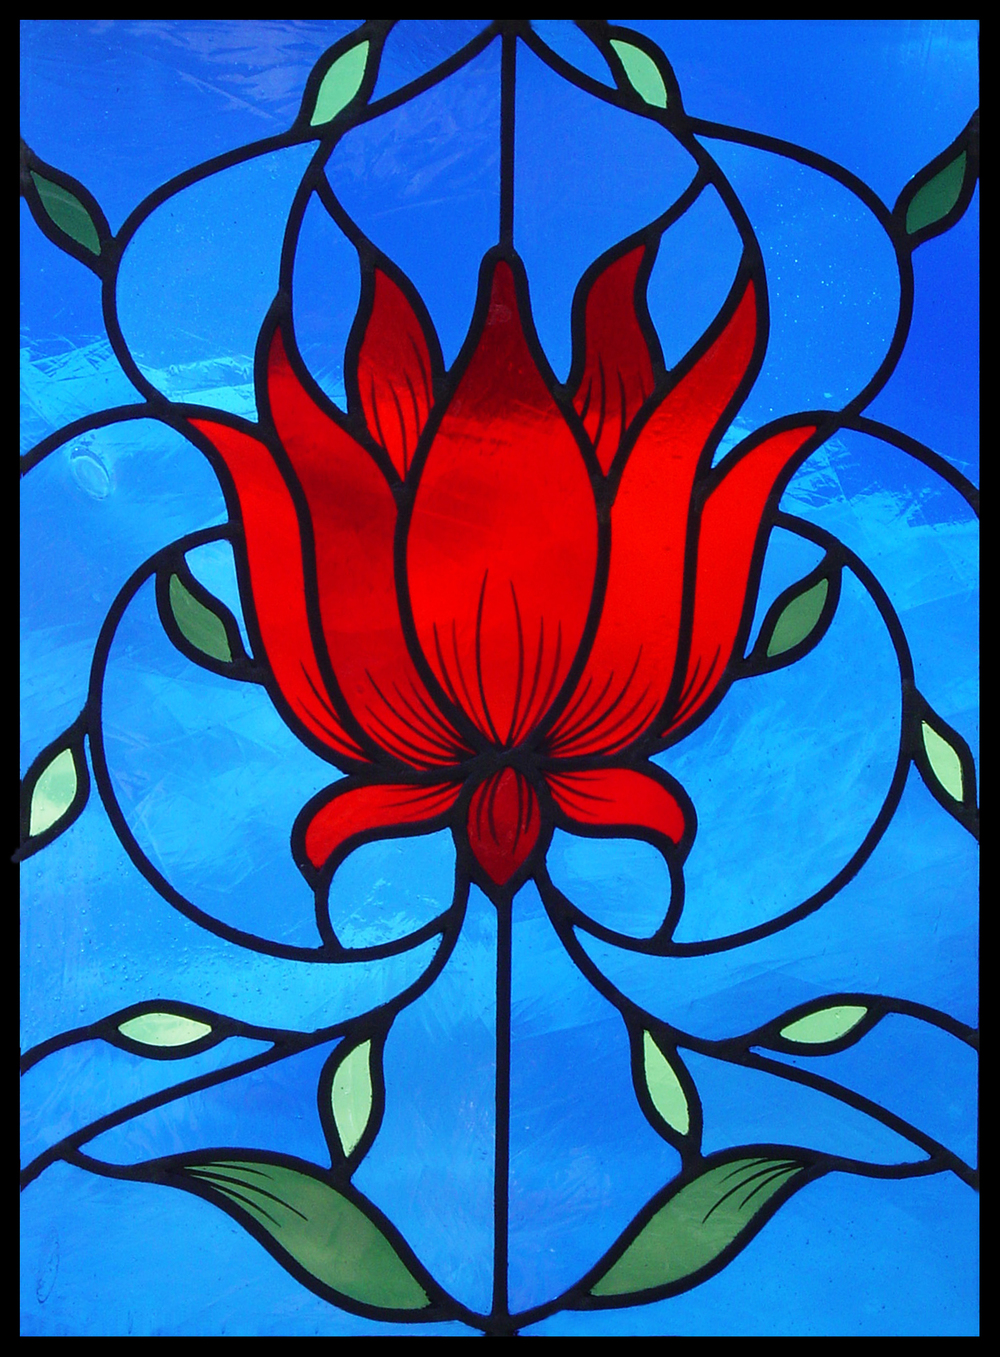 Red Lotus panel after William Morris.